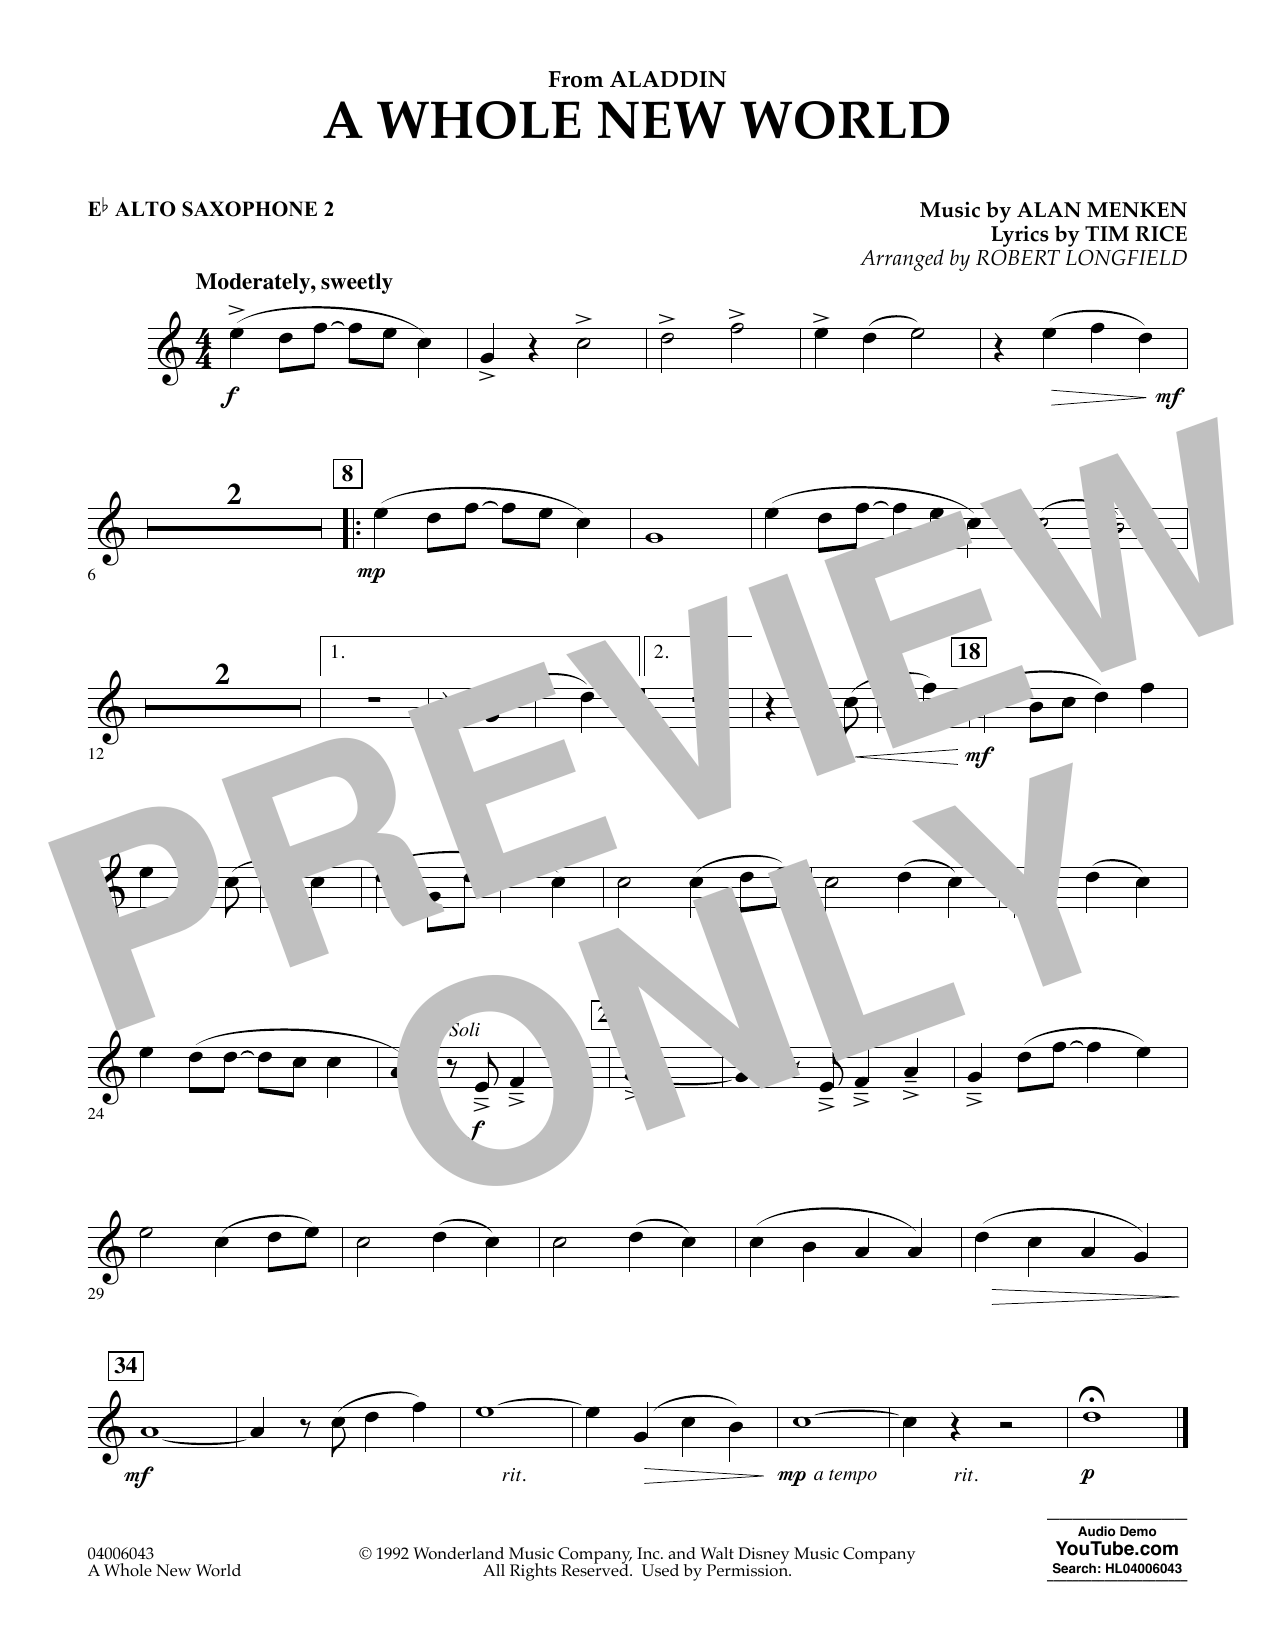 Download Alan Menken 'A Whole New World (from Aladdin) (arr. Robert Longfield) - Eb Alto Saxophone 2' Digital Sheet Music Notes & Chords and start playing in minutes